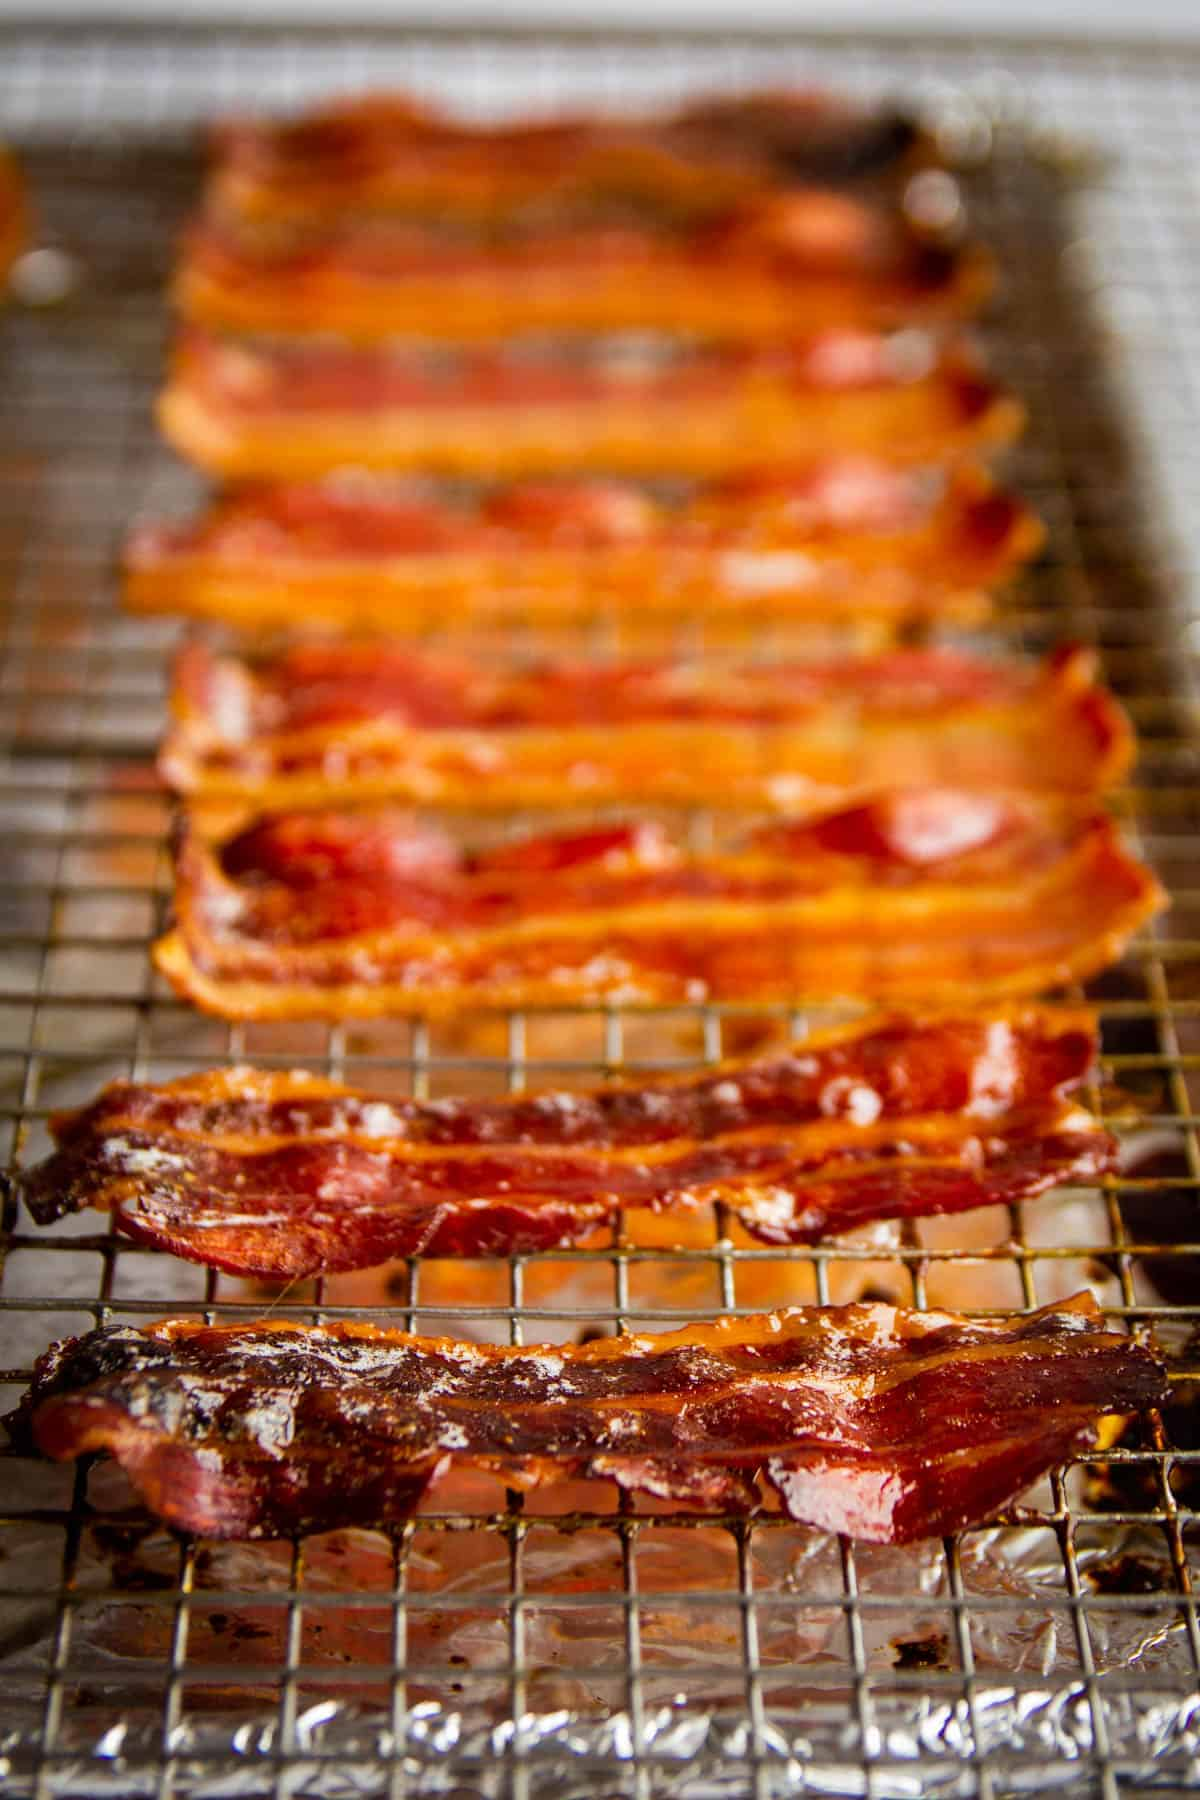 Crispy maple bacon lined up on a tray